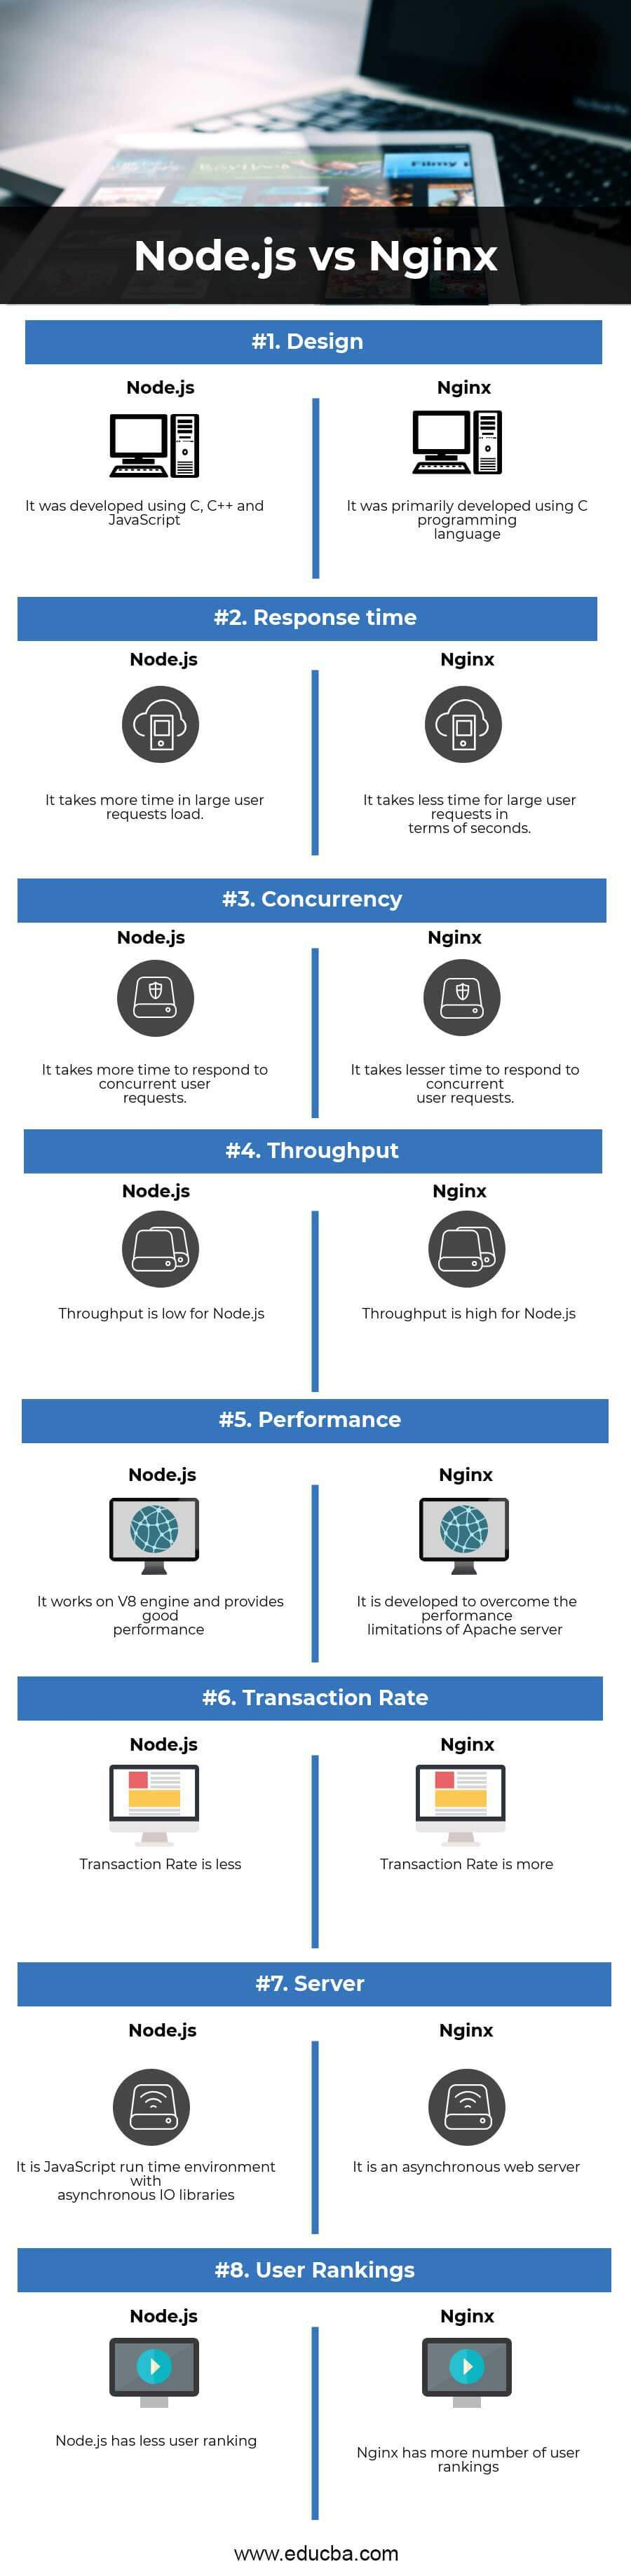 Node js vs Nginx - Learn The Top 8 Important Differences